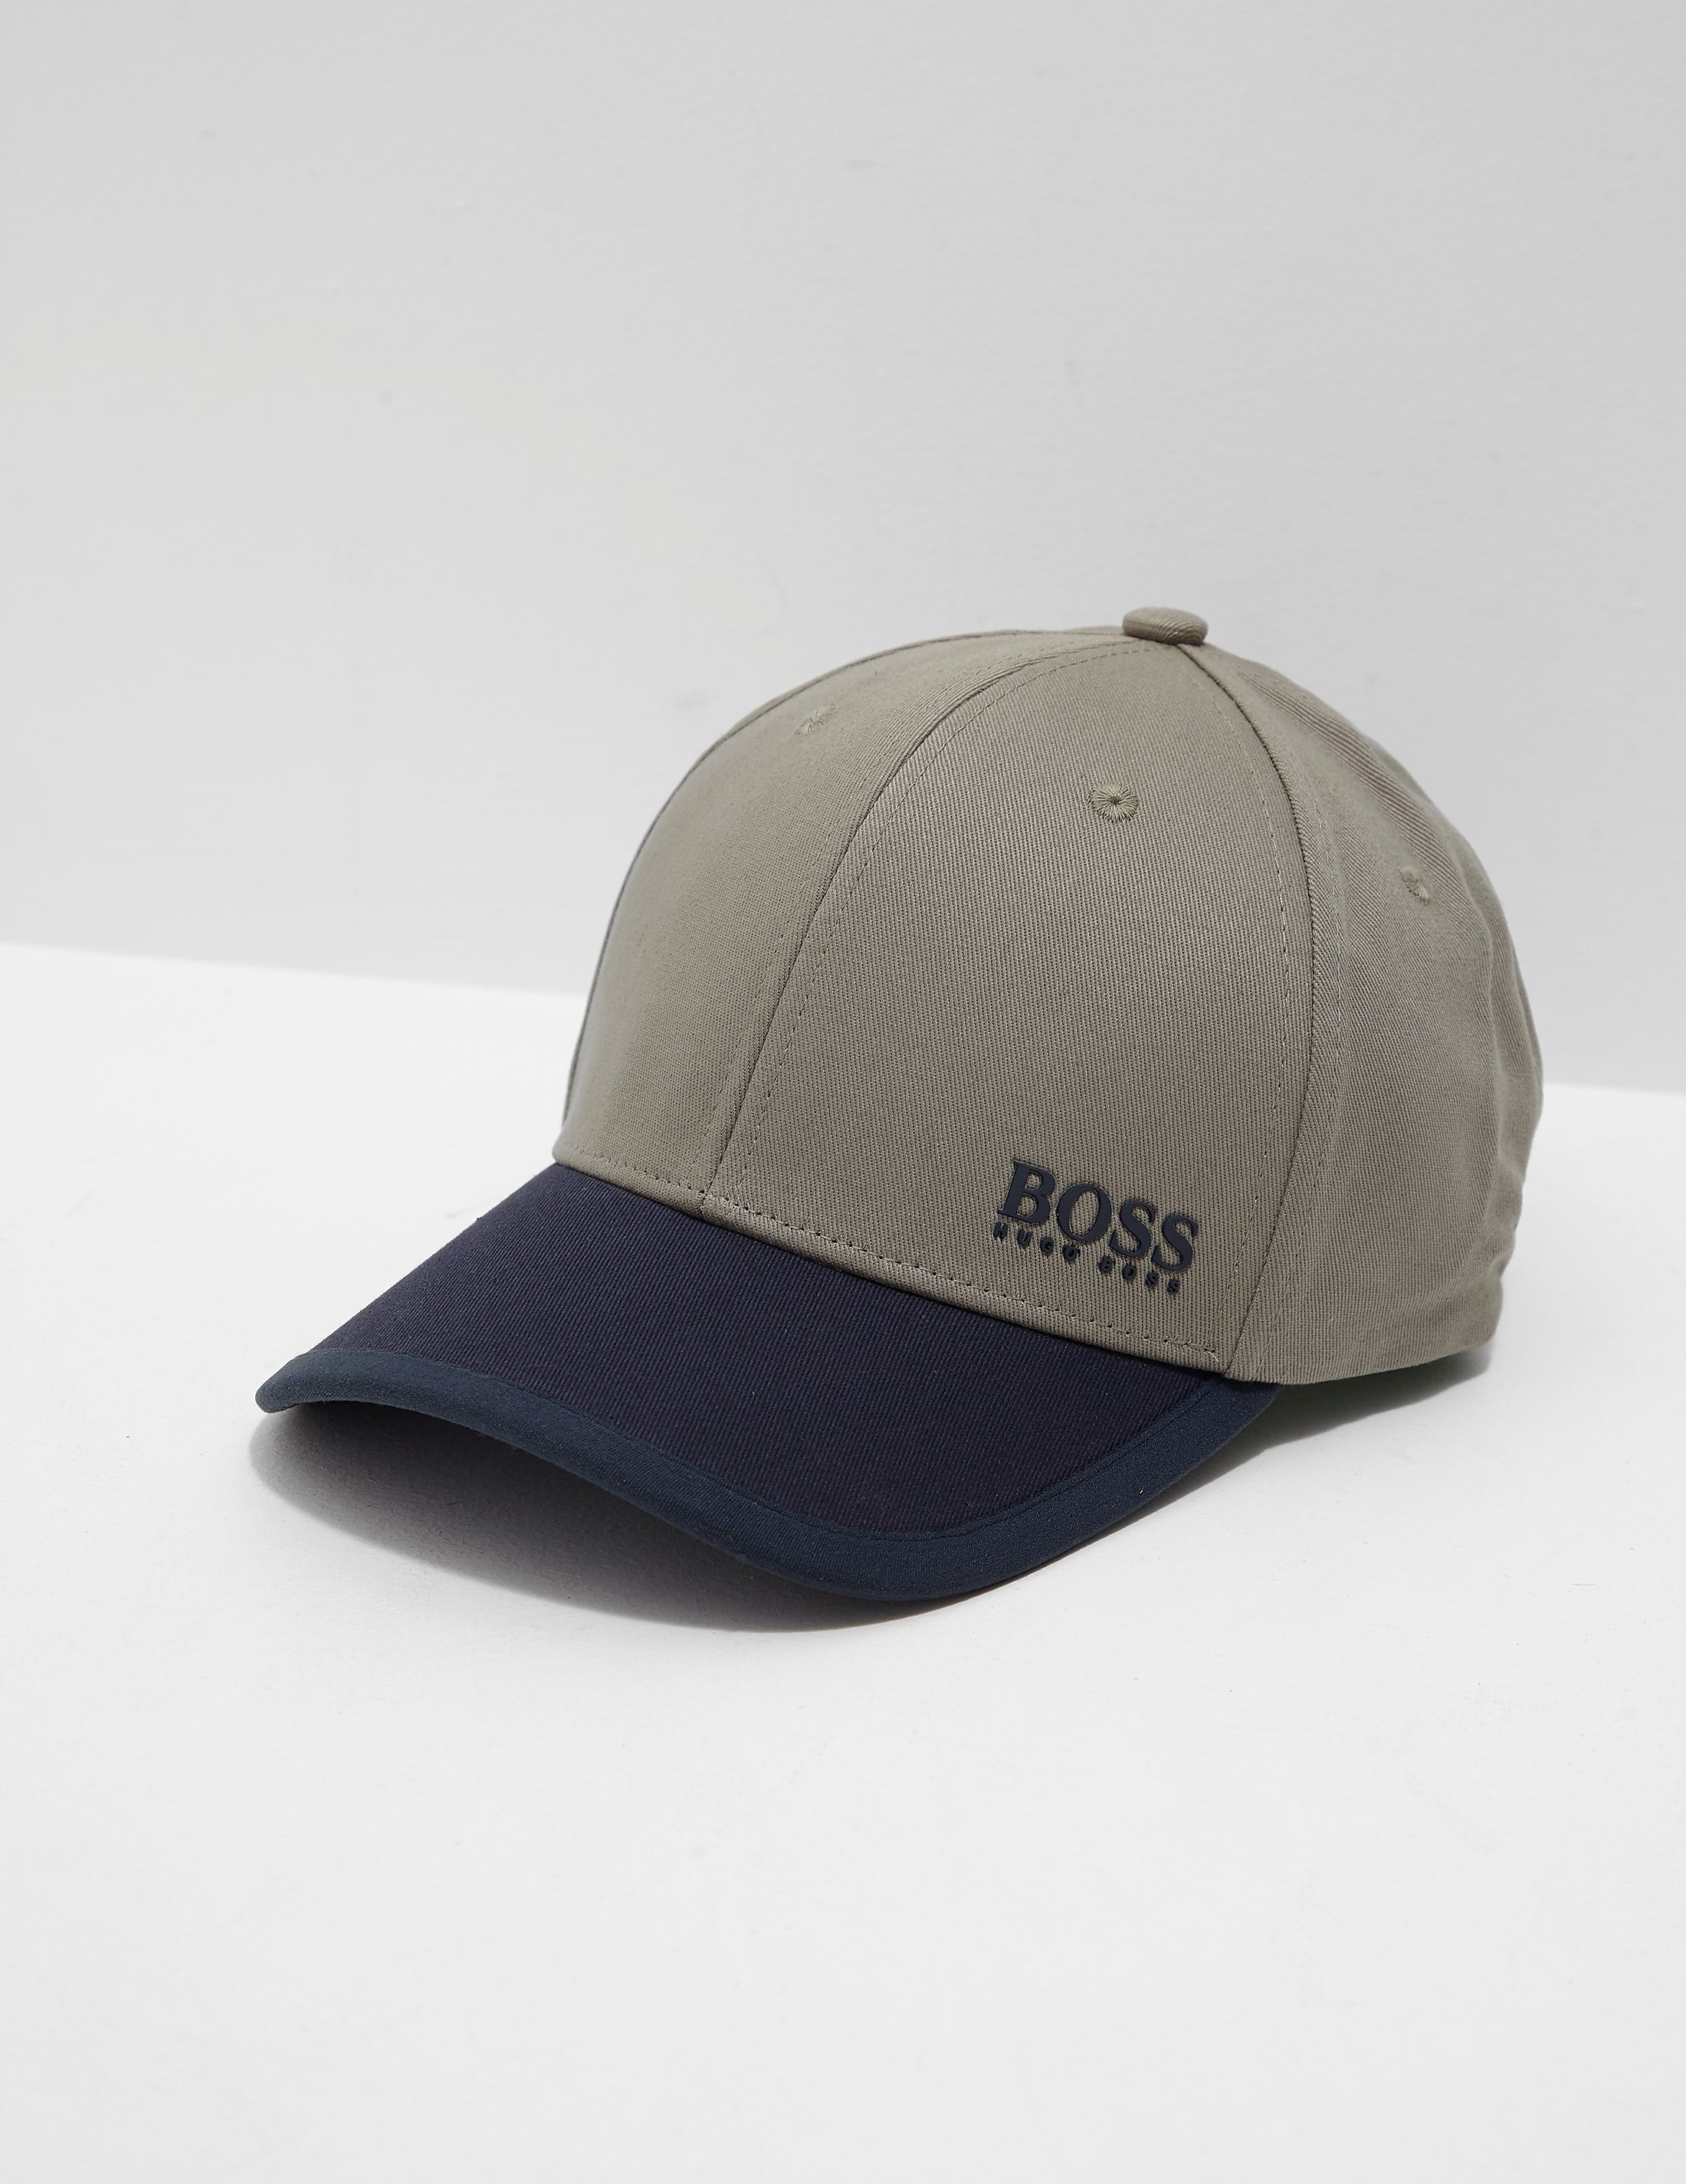 BOSS Green Contrast Colour Cap